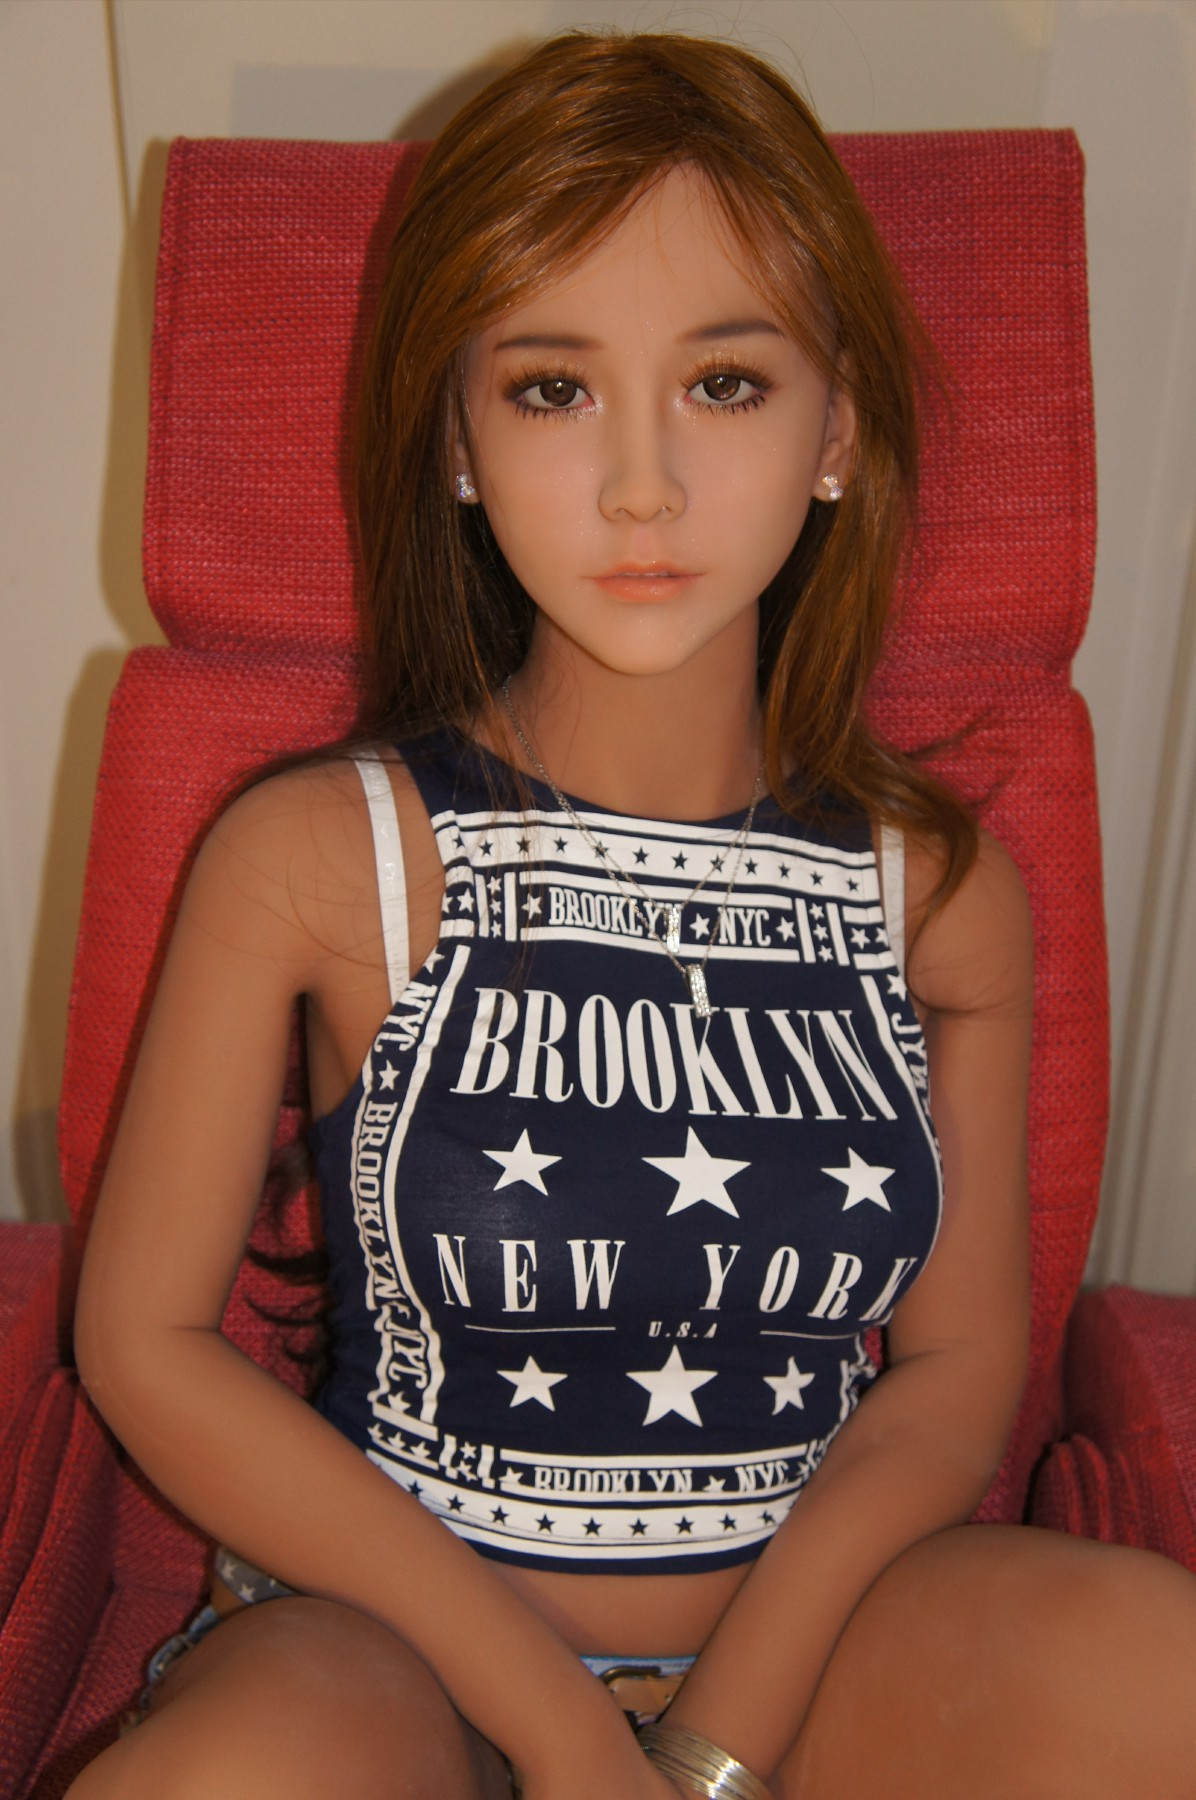 Sarah-158CM - Buy silicon sex doll, young silicone sex